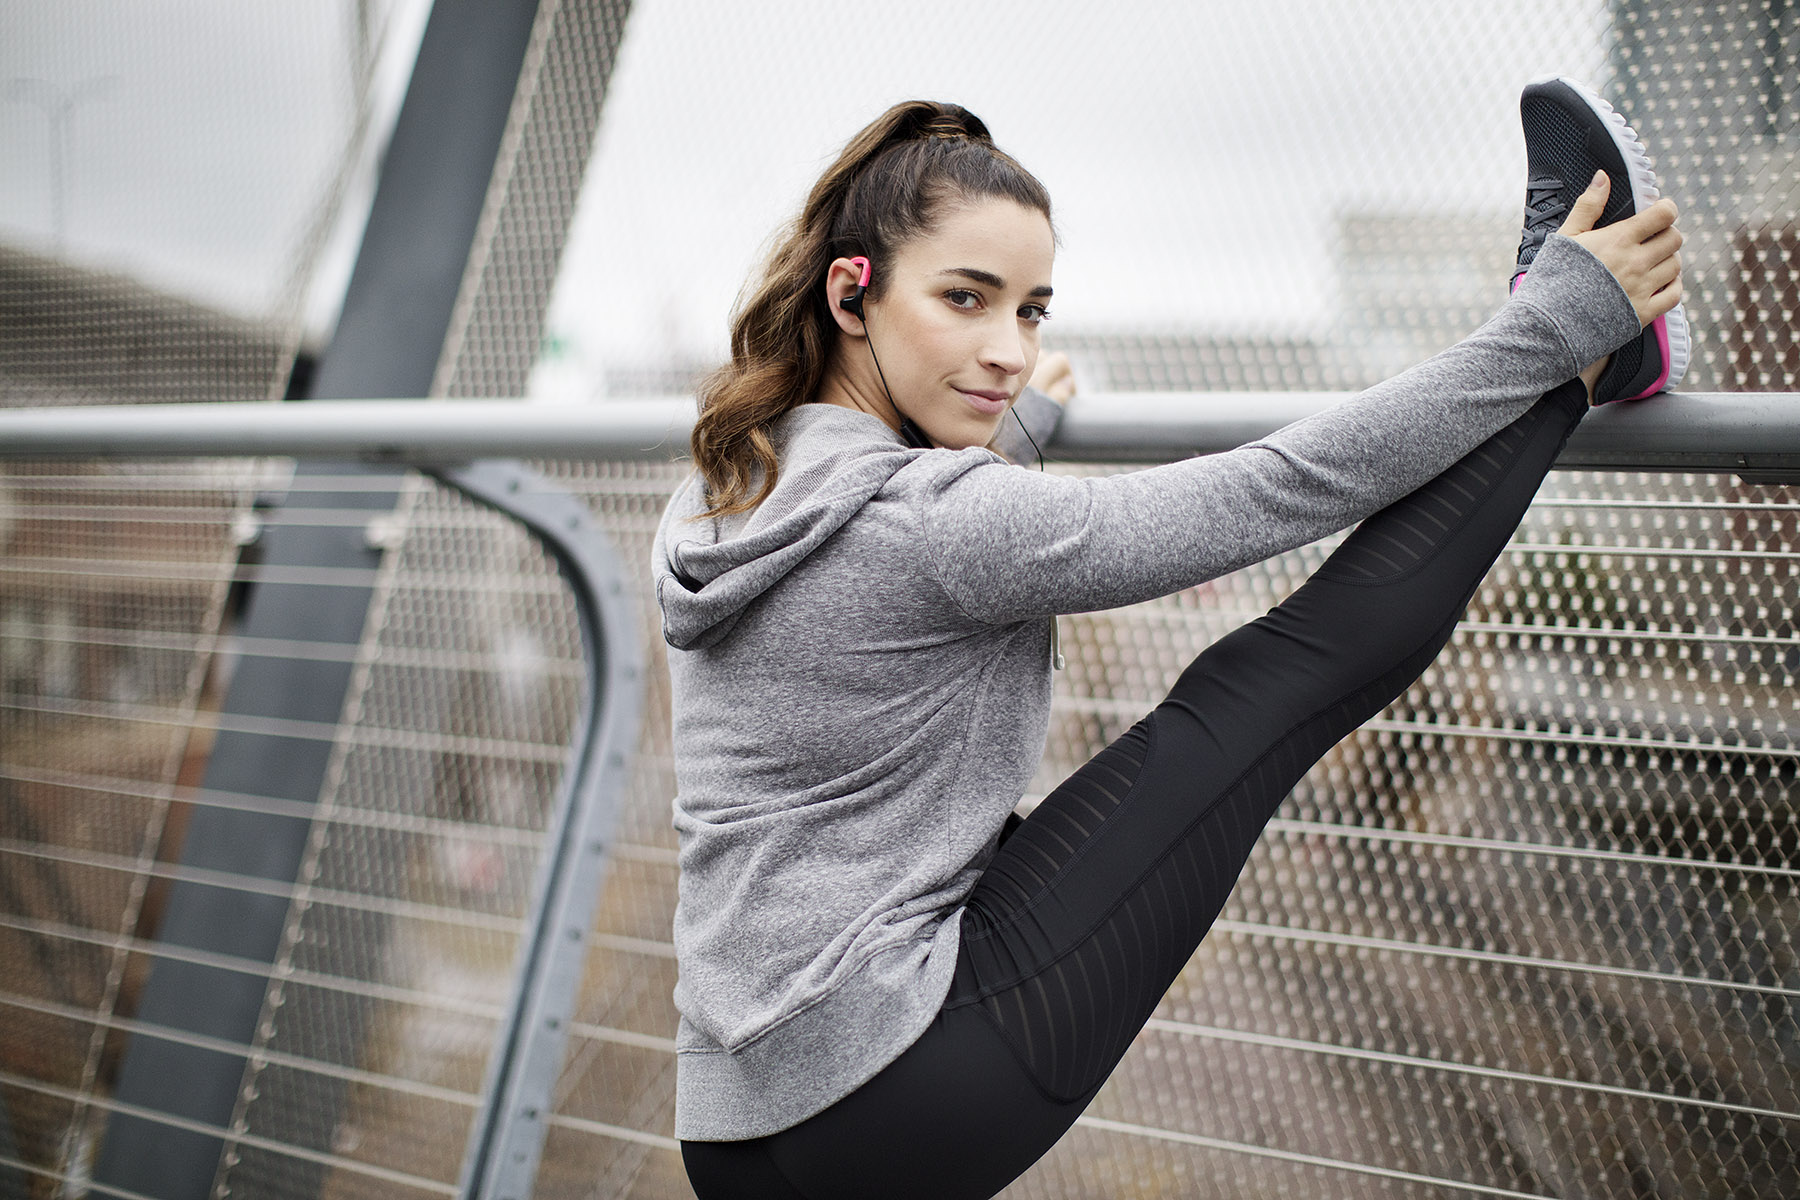 Aly Raisman for Playtex Sport by Boston based commercial lifestyle photographer Brian Nevins